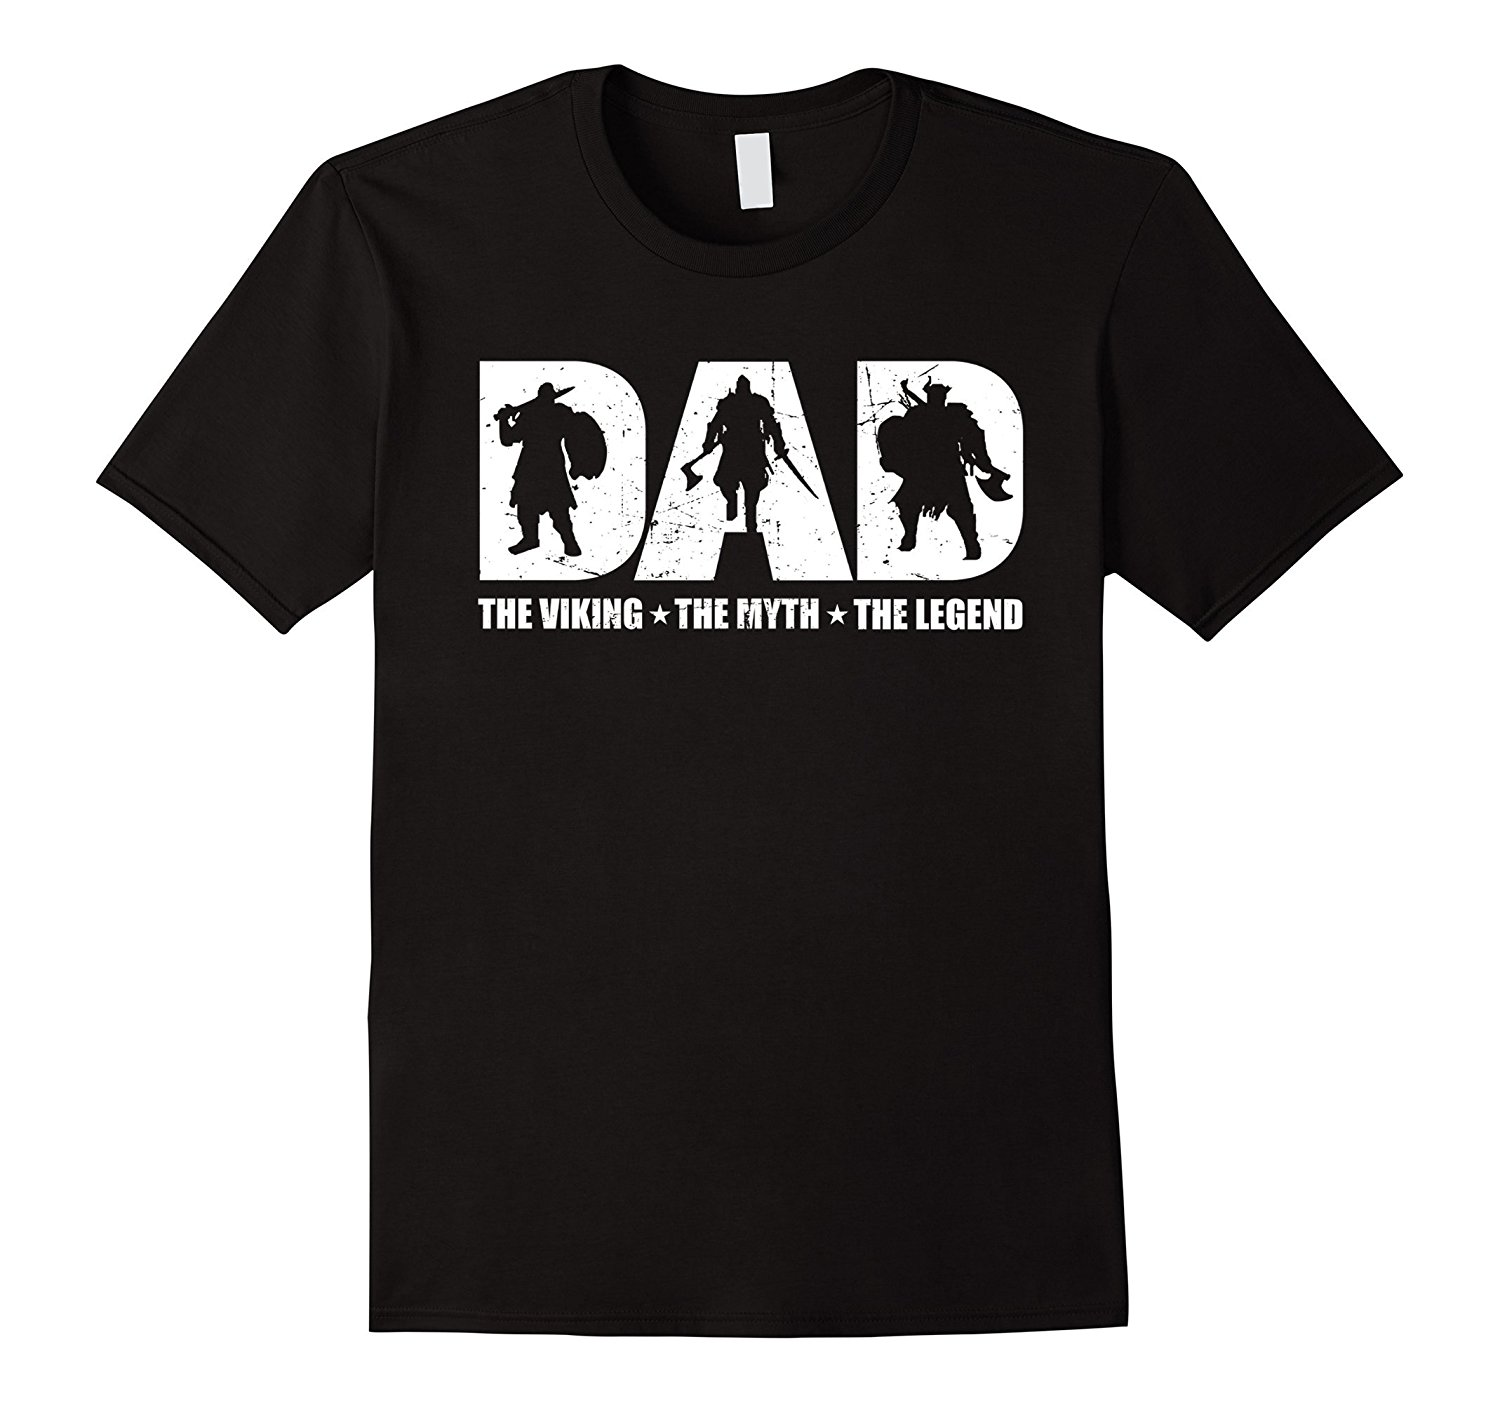 Dad The Viking The Myth The Legend T-shirt Summer Short Sleeve Shirts Tops S~3Xl Big Size Cotton Tees Free Shipping T Shirt